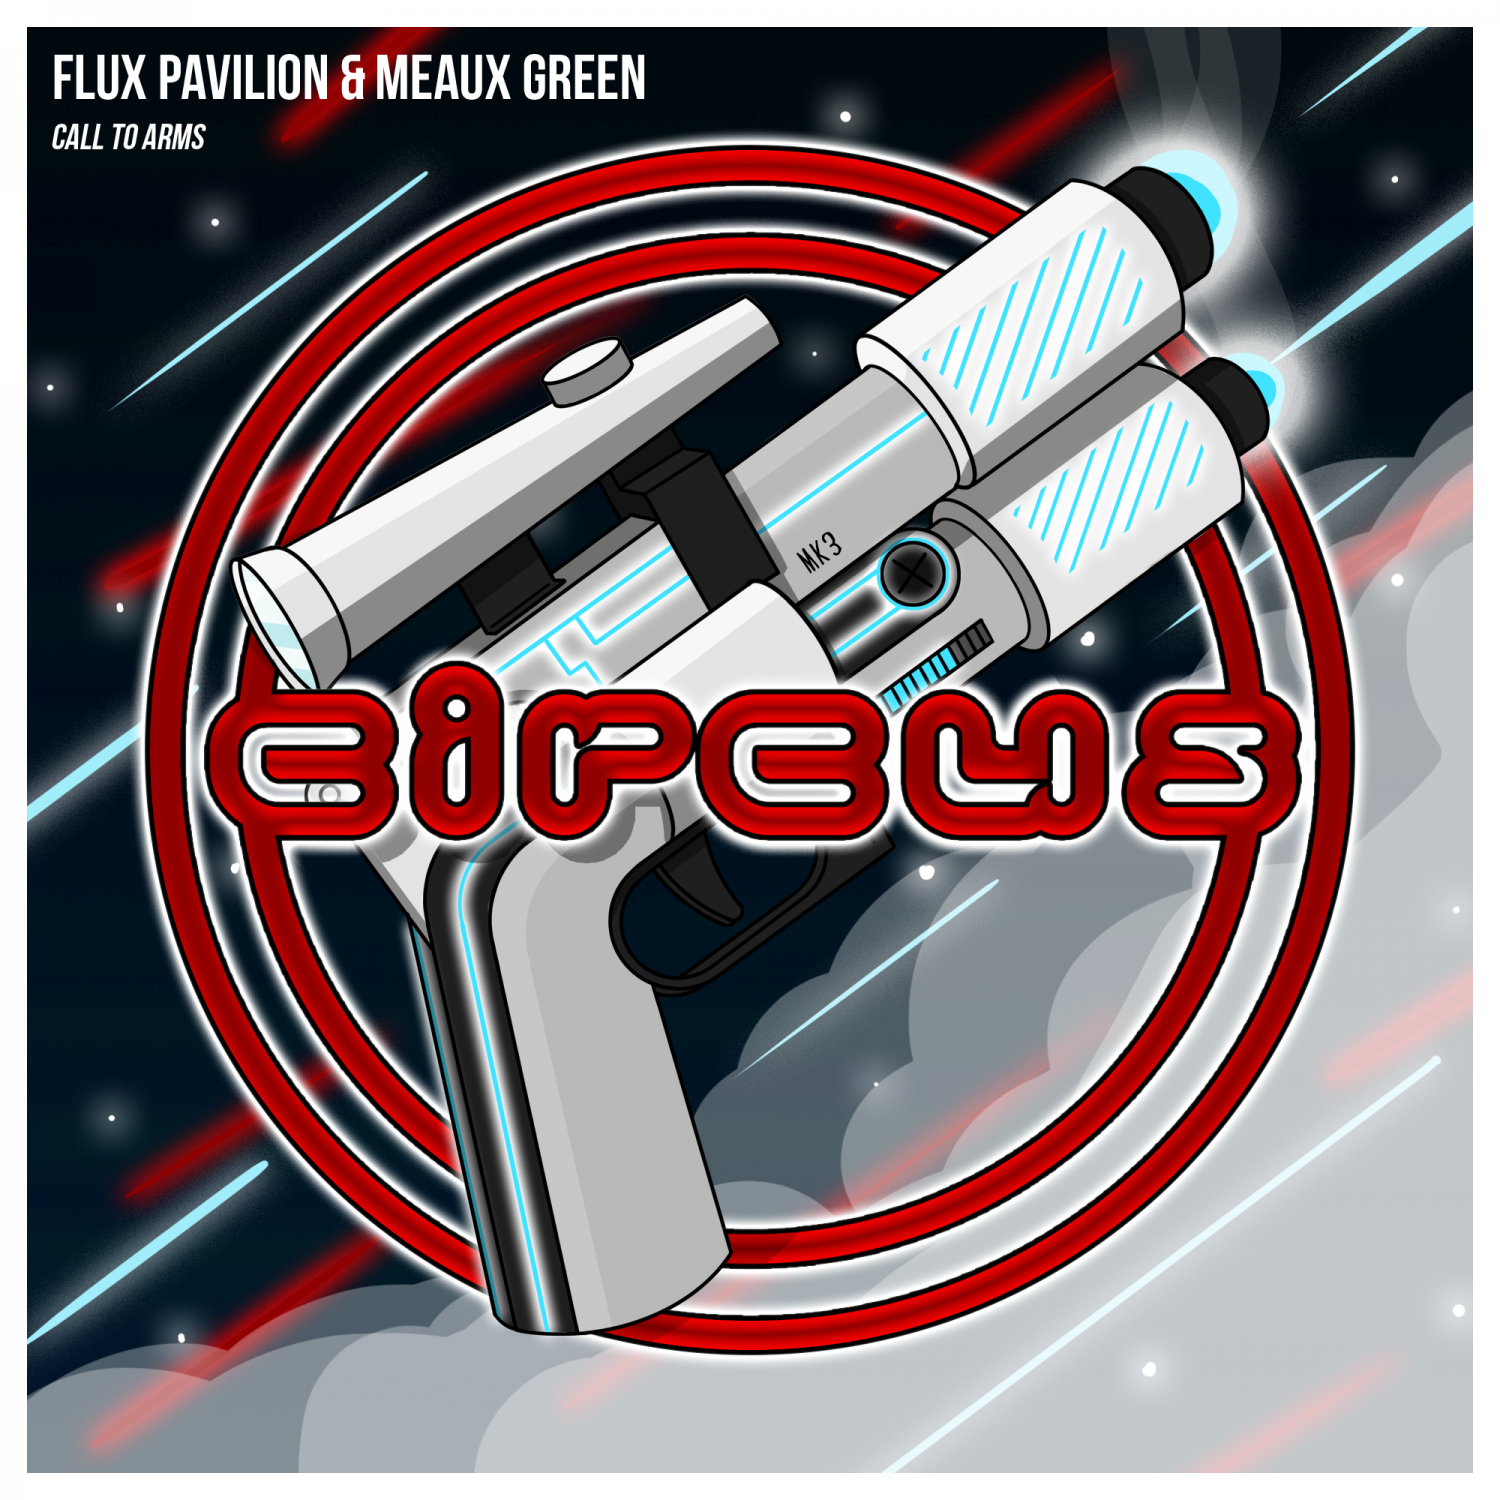 Flux Pavilion Meaux Green Call To Arms Circus Records